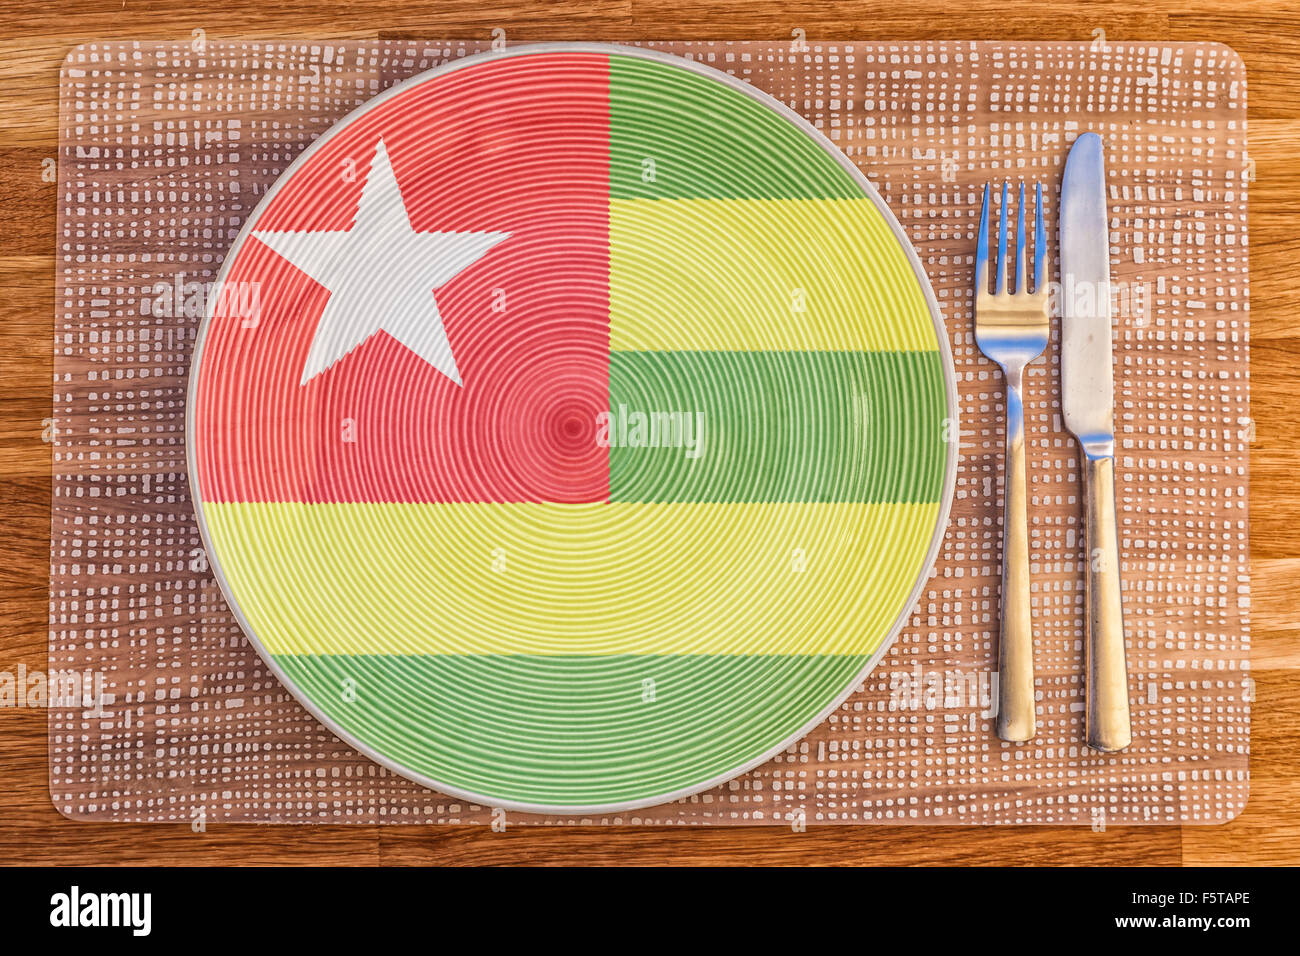 Dinner plate with the flag of Togo on it for your international food and drink concepts. - Stock Image